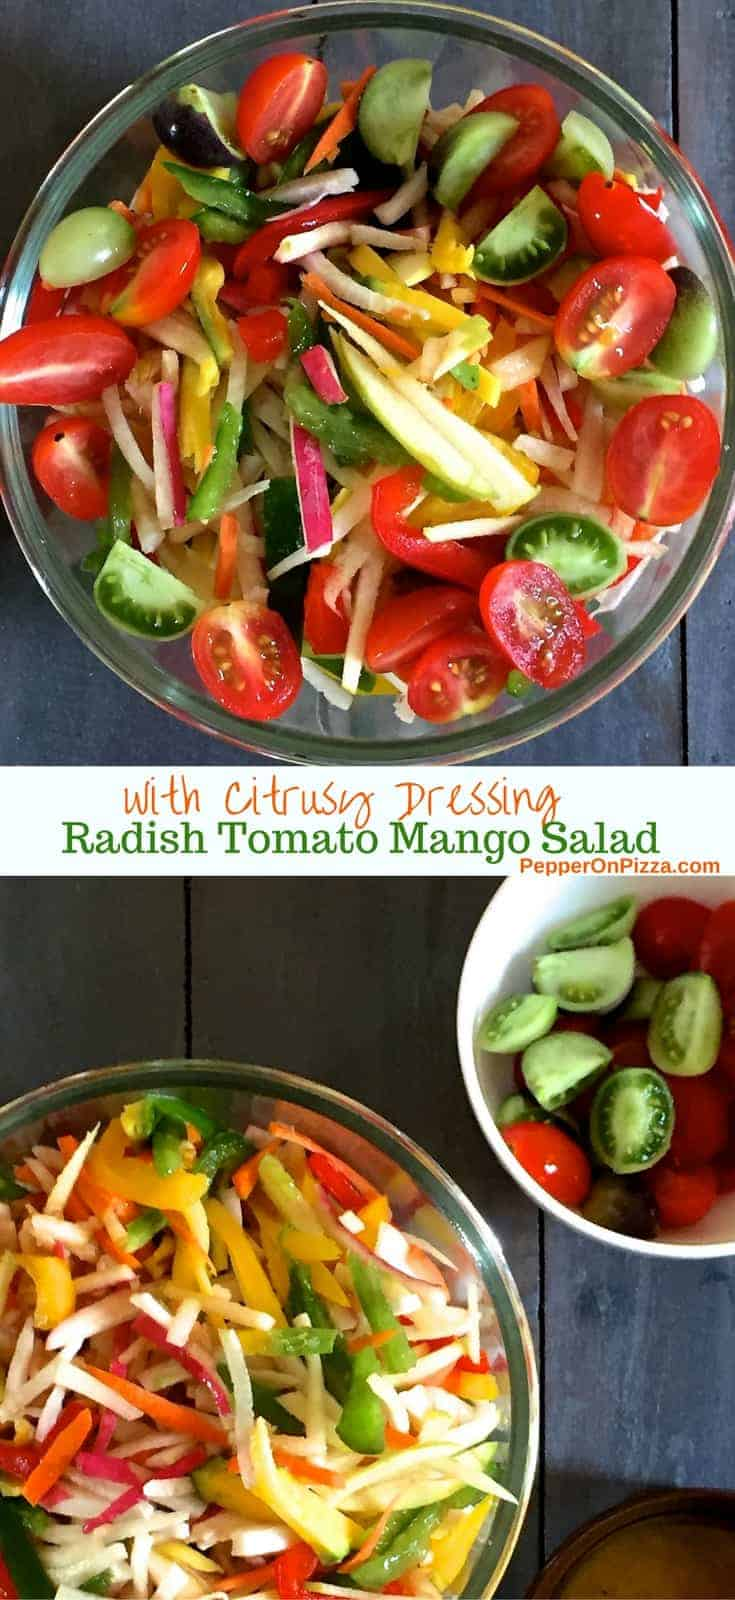 Salad of Radish Tomato Raw Mango in a citrusy ginger dressing